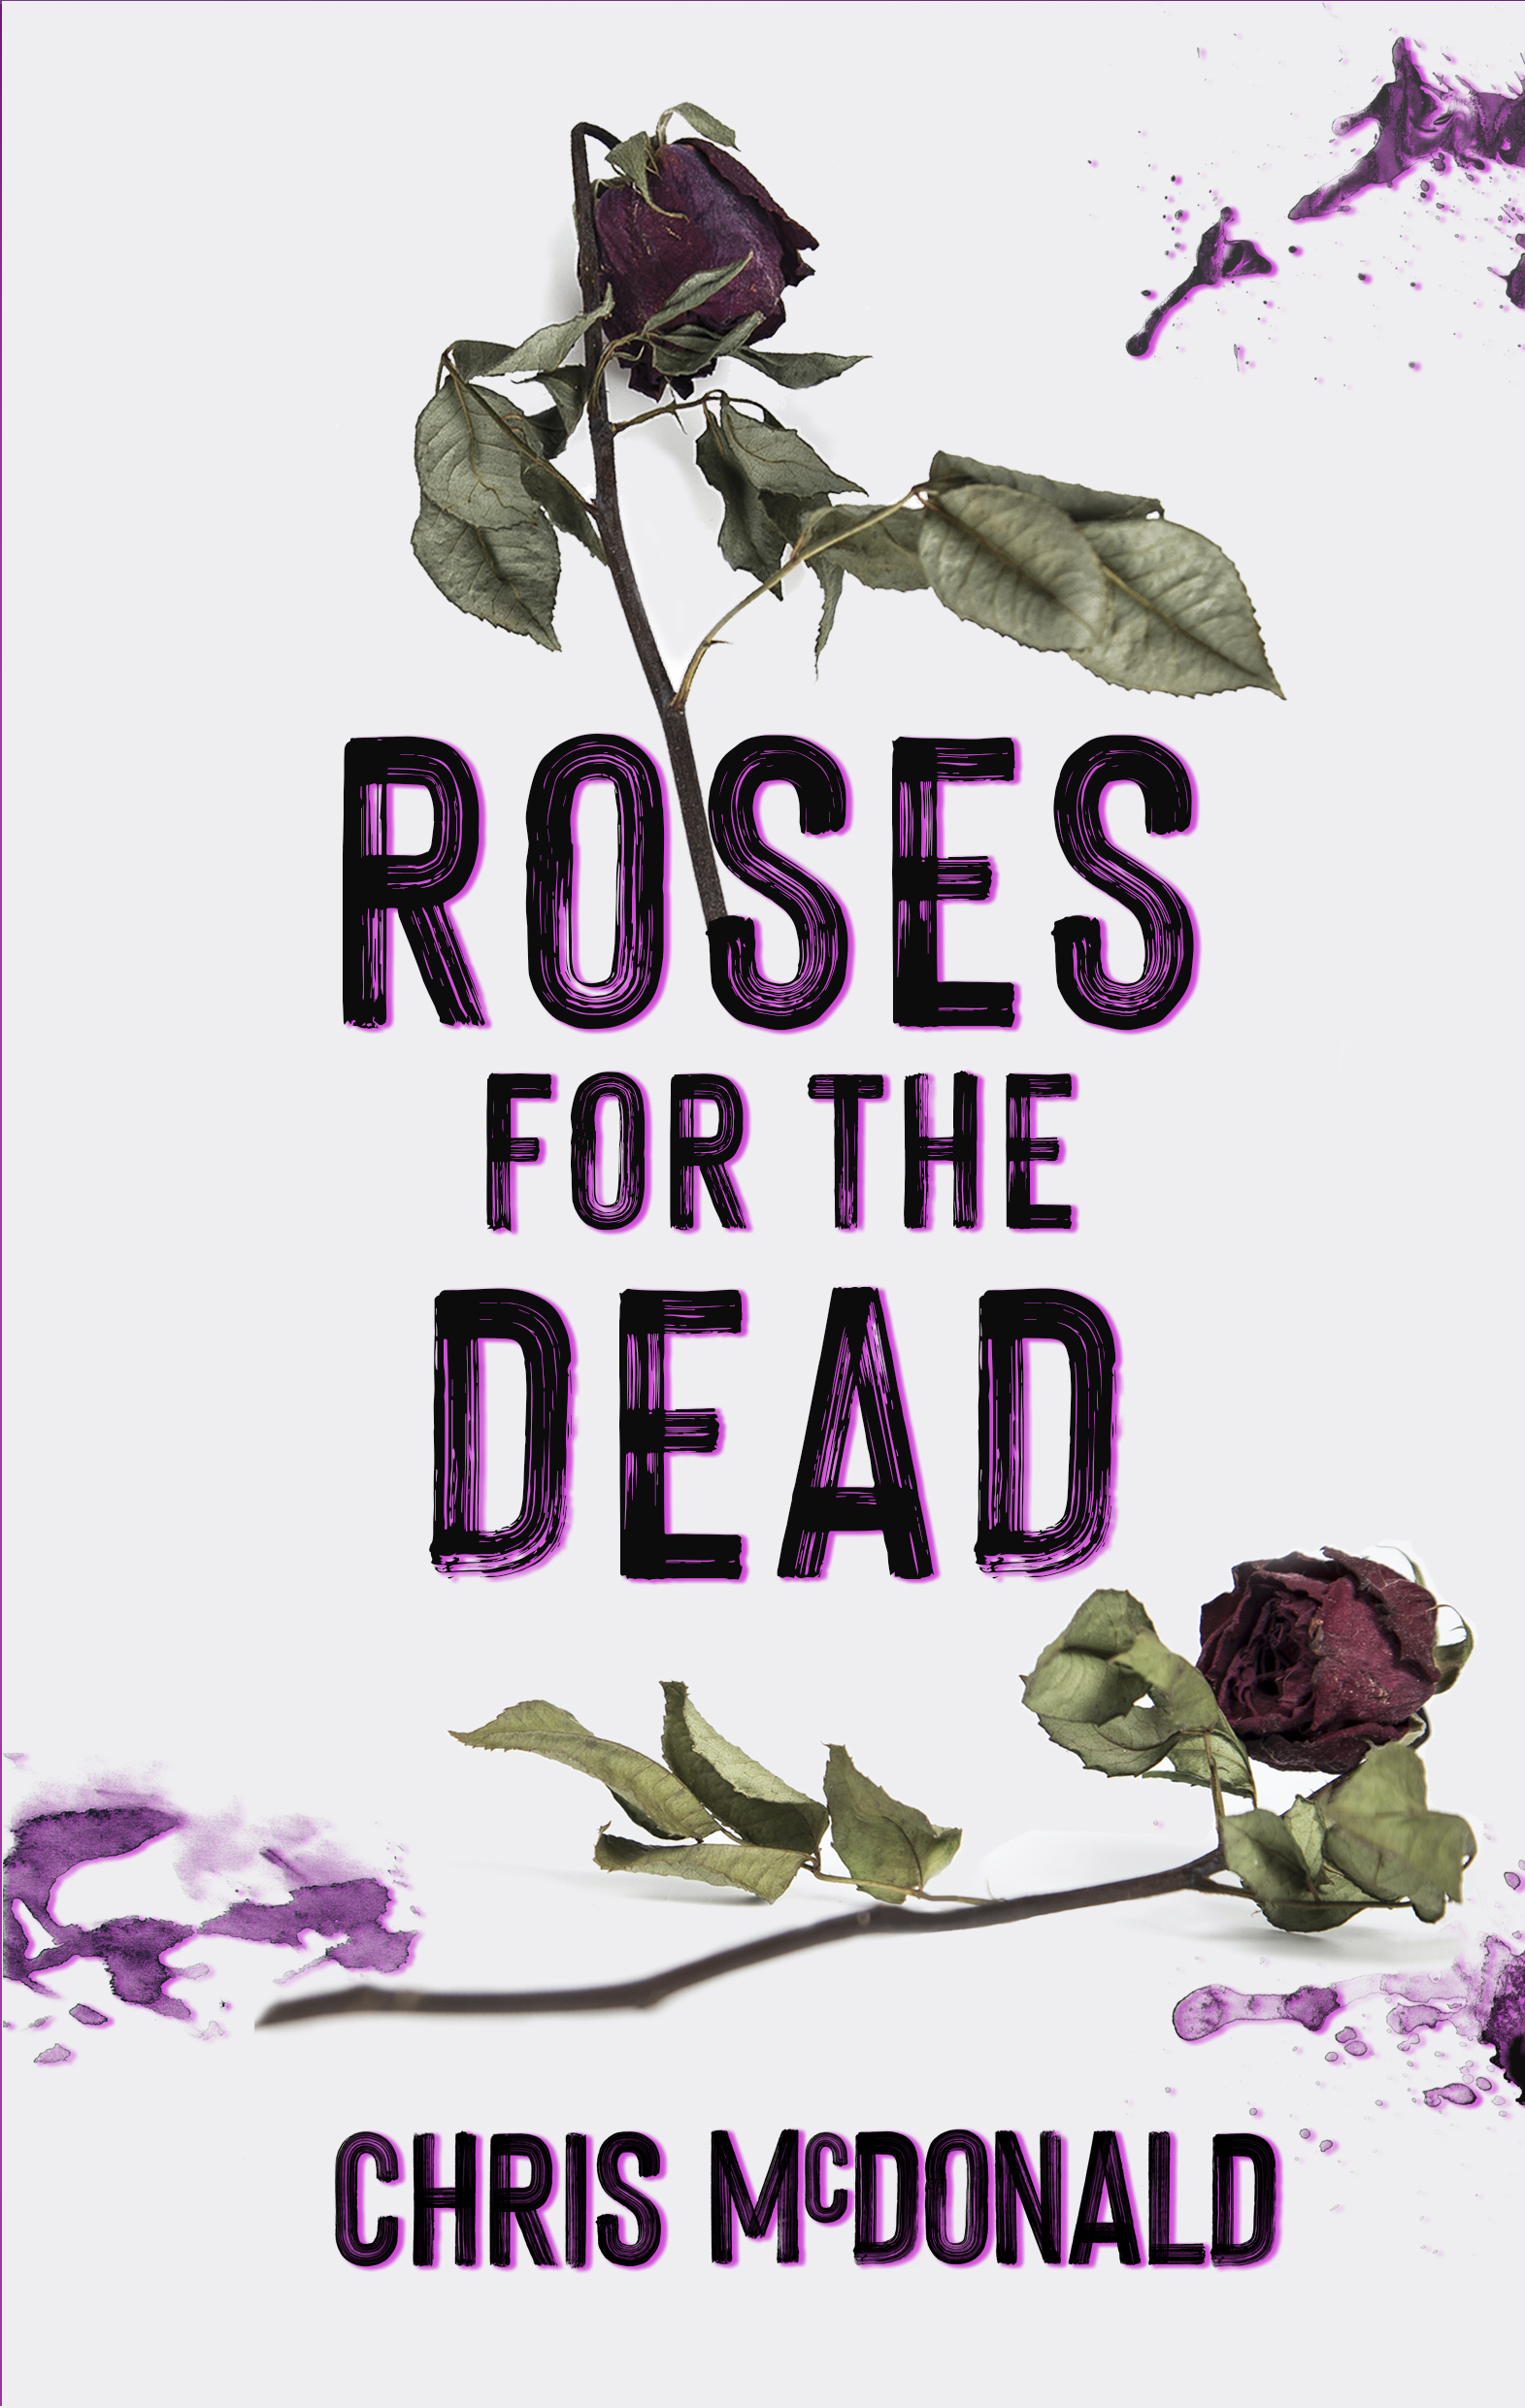 Cover art for Roses for the Dead